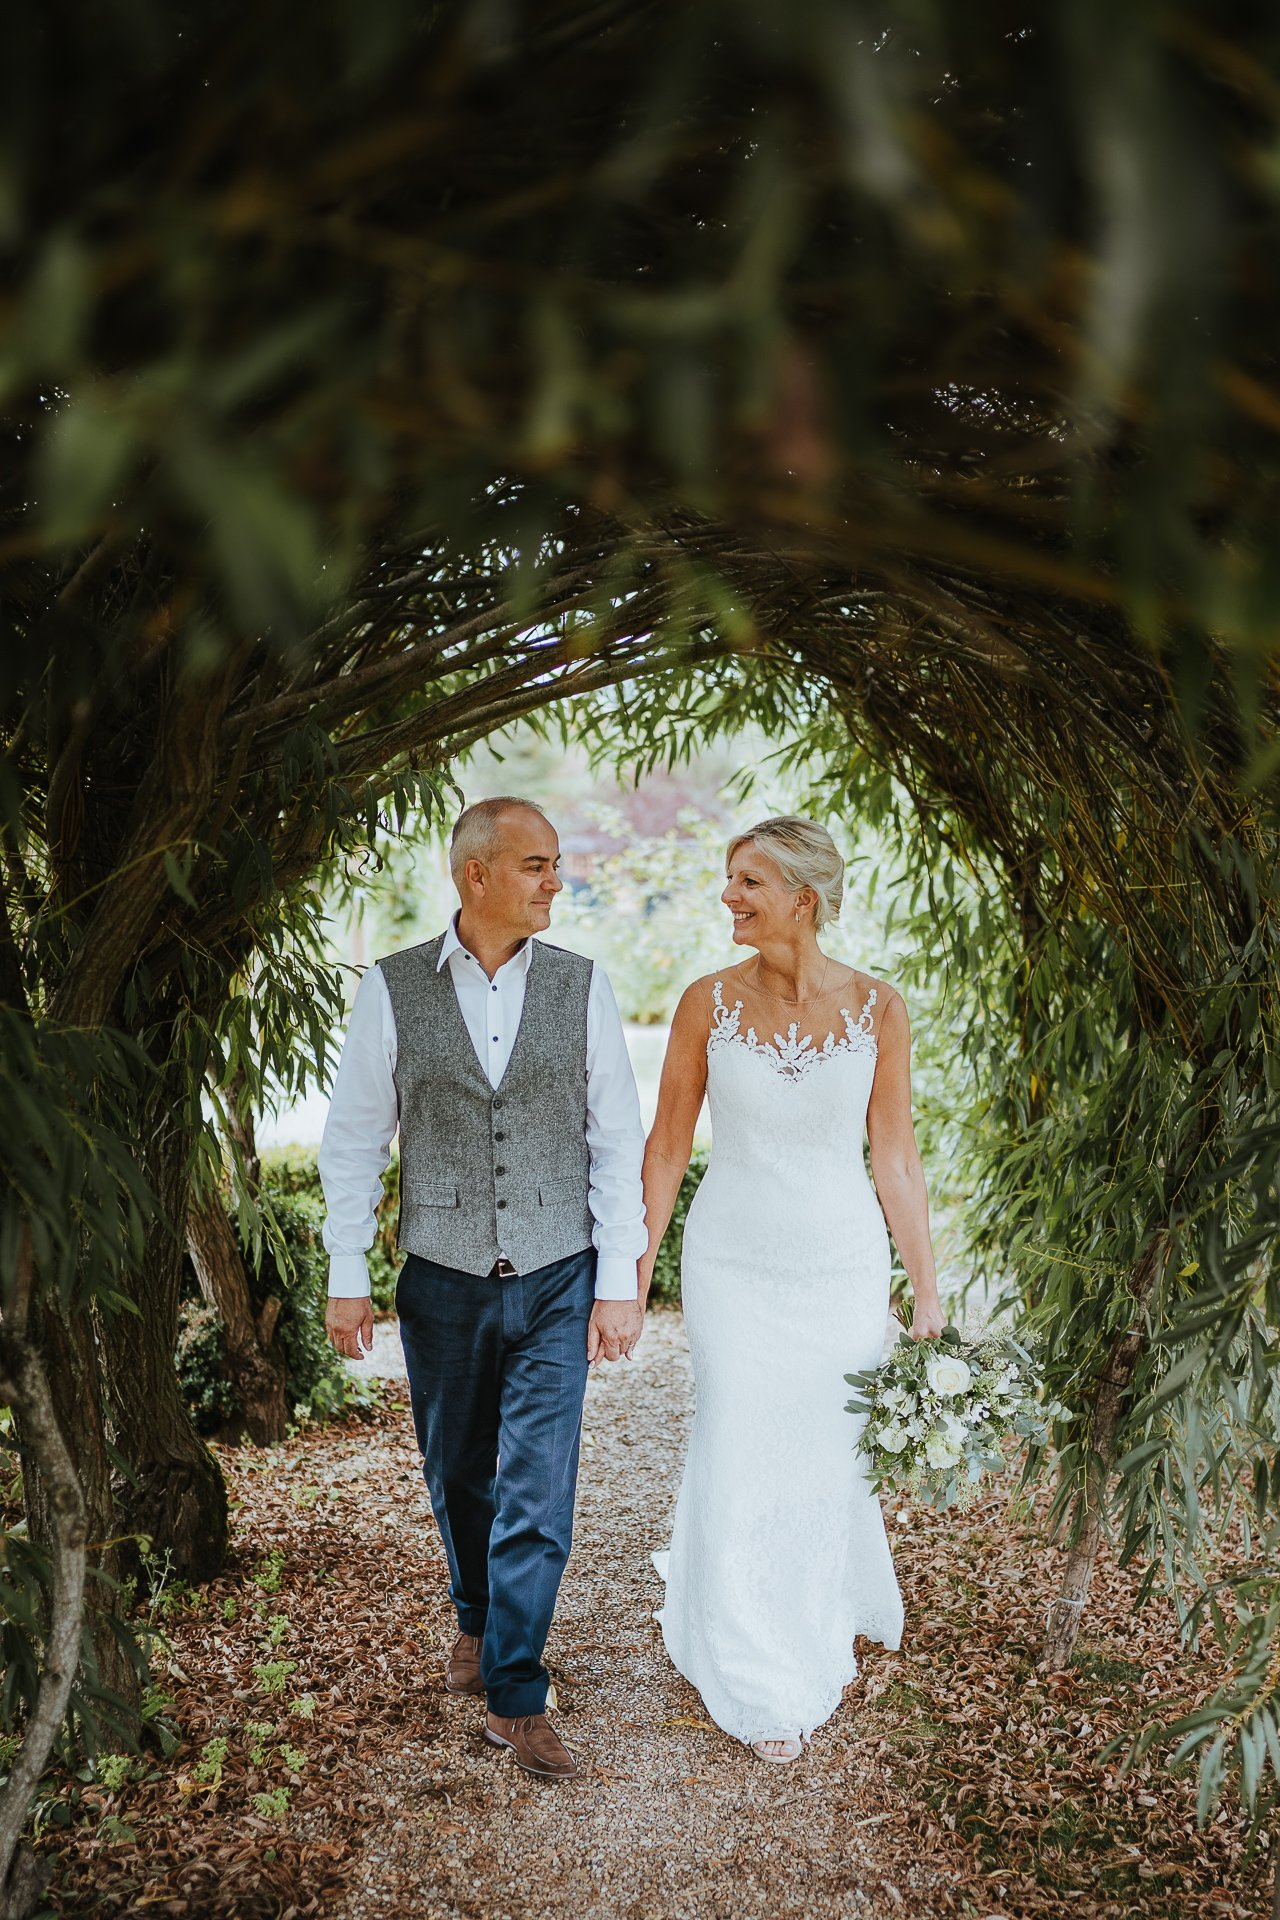 Married couple walk through willow arch holding hands